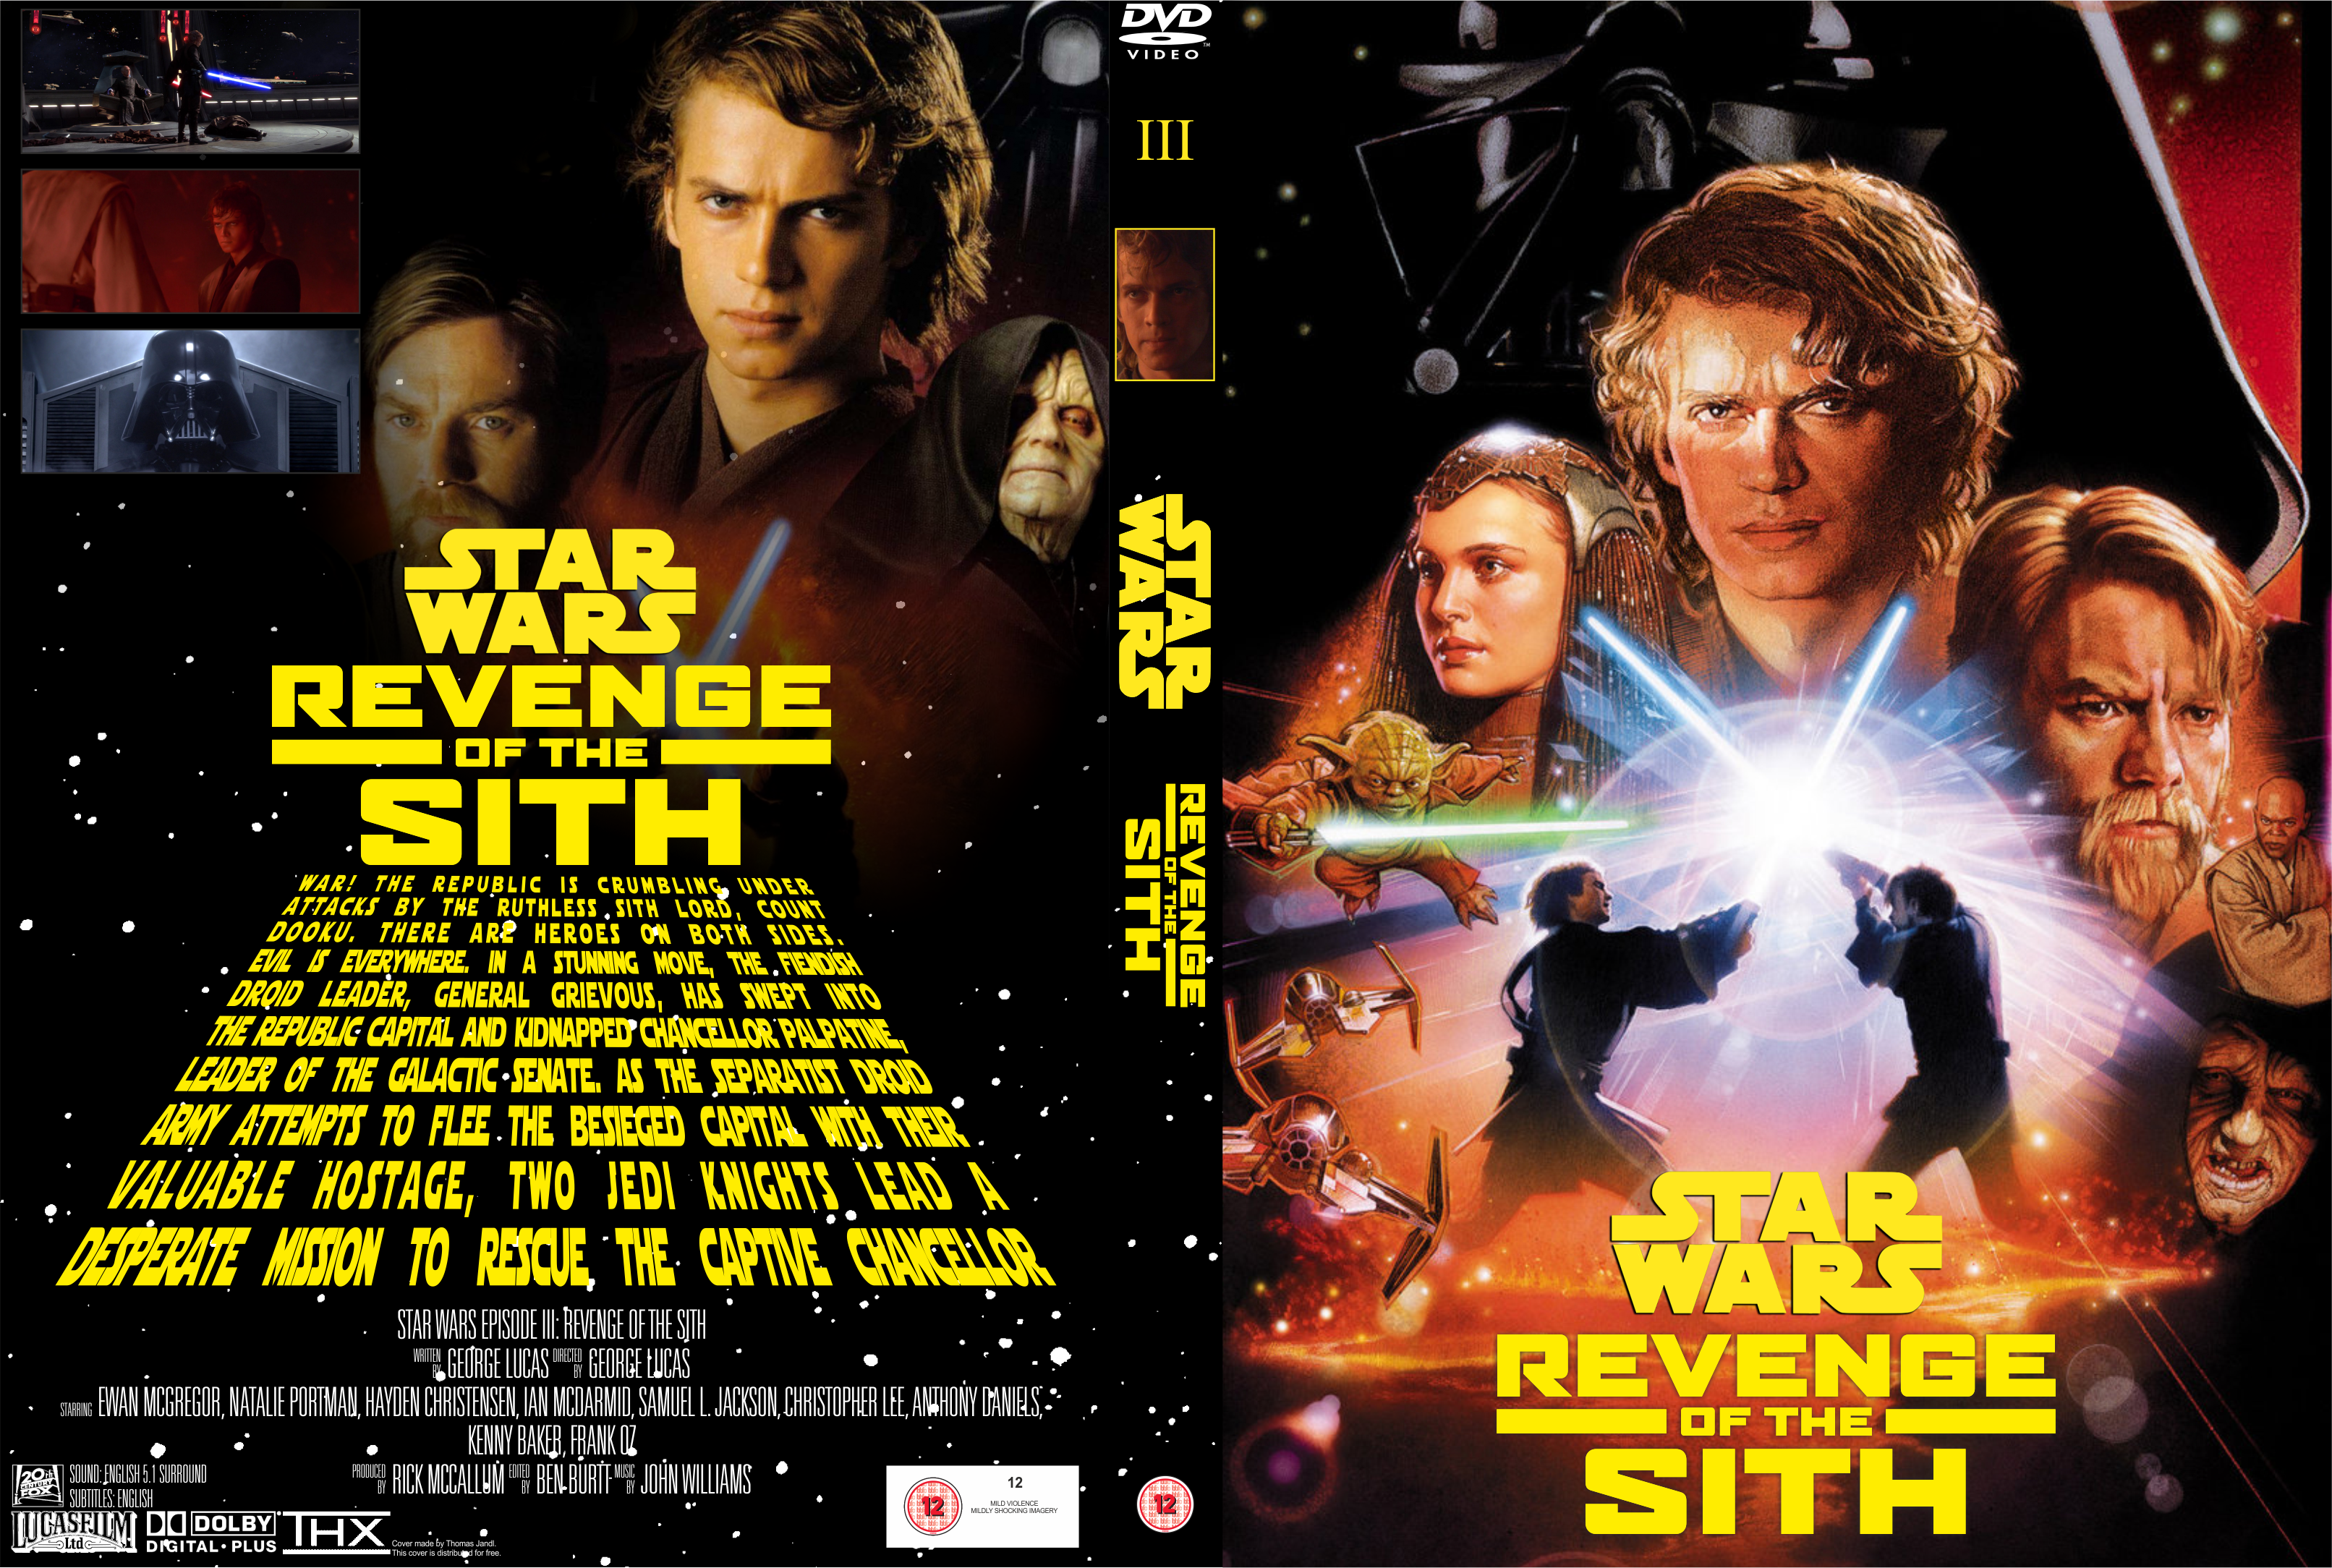 Star Wars Episode Iii Revenge Of The Sith By Wario64i On Deviantart